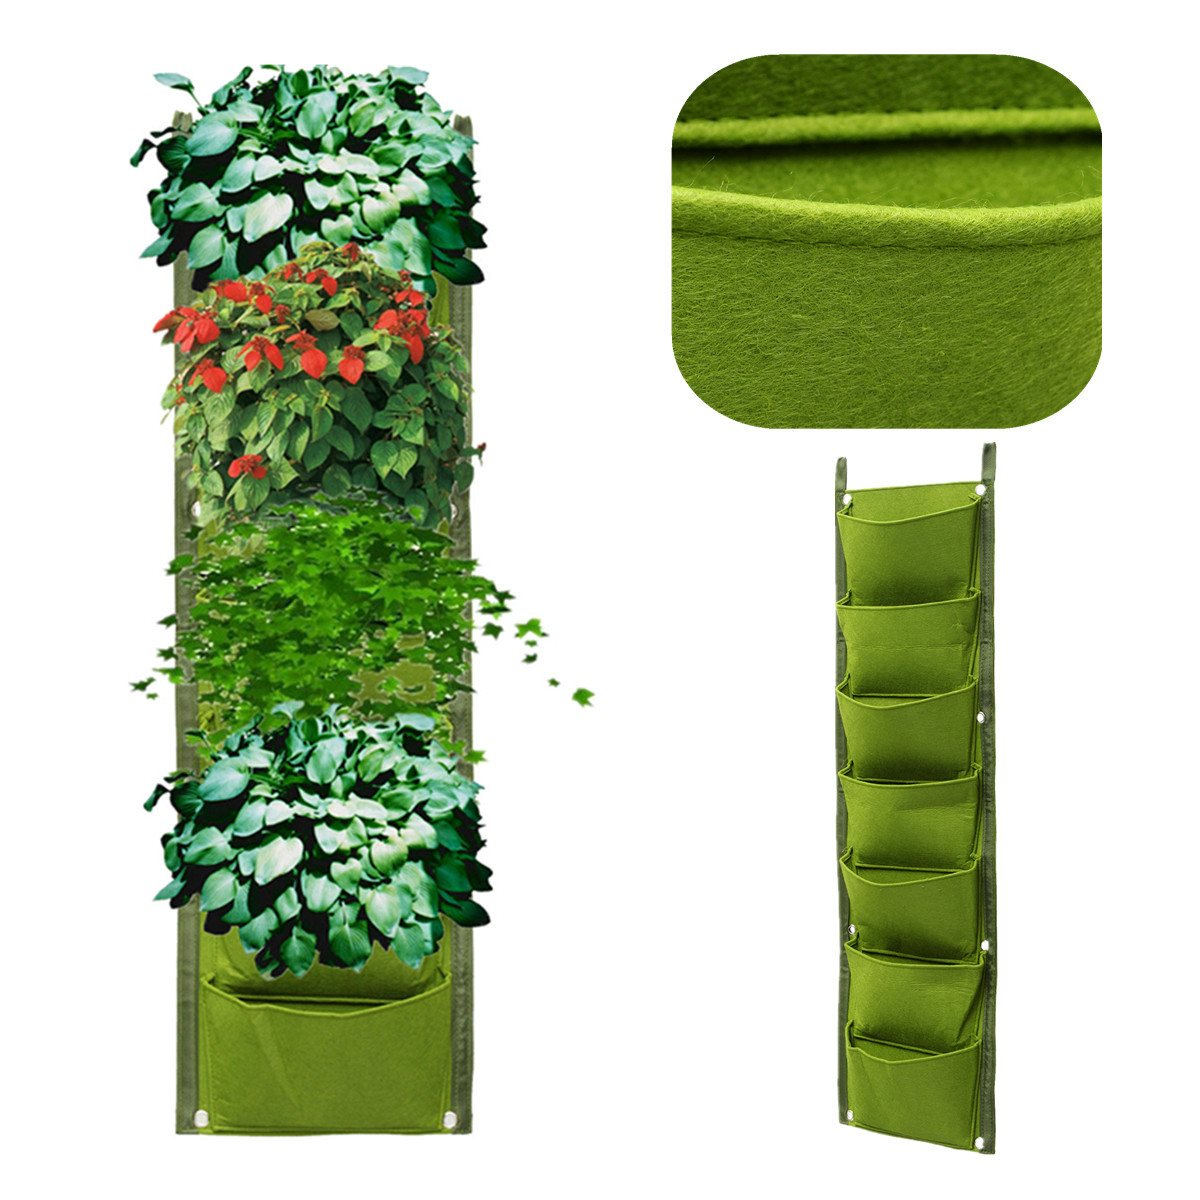 Personable Online Get Cheap Vertical Garden Planter Aliexpresscom  Alibaba  With Glamorous Green Grow Bag Wall Hanging Planting Bags Garden Bag  Pockets Planter Vertical  Garden Vegetable Living Home Supplies With Appealing Brown Rattan Effect Garden Furniture Also Robert Dyas Garden Furniture In Addition Miro Garden And Gardening Signs As Well As What Color Is A Garden Snake Additionally Garden Centres Near Blackburn From Aliexpresscom With   Glamorous Online Get Cheap Vertical Garden Planter Aliexpresscom  Alibaba  With Appealing Green Grow Bag Wall Hanging Planting Bags Garden Bag  Pockets Planter Vertical  Garden Vegetable Living Home Supplies And Personable Brown Rattan Effect Garden Furniture Also Robert Dyas Garden Furniture In Addition Miro Garden From Aliexpresscom